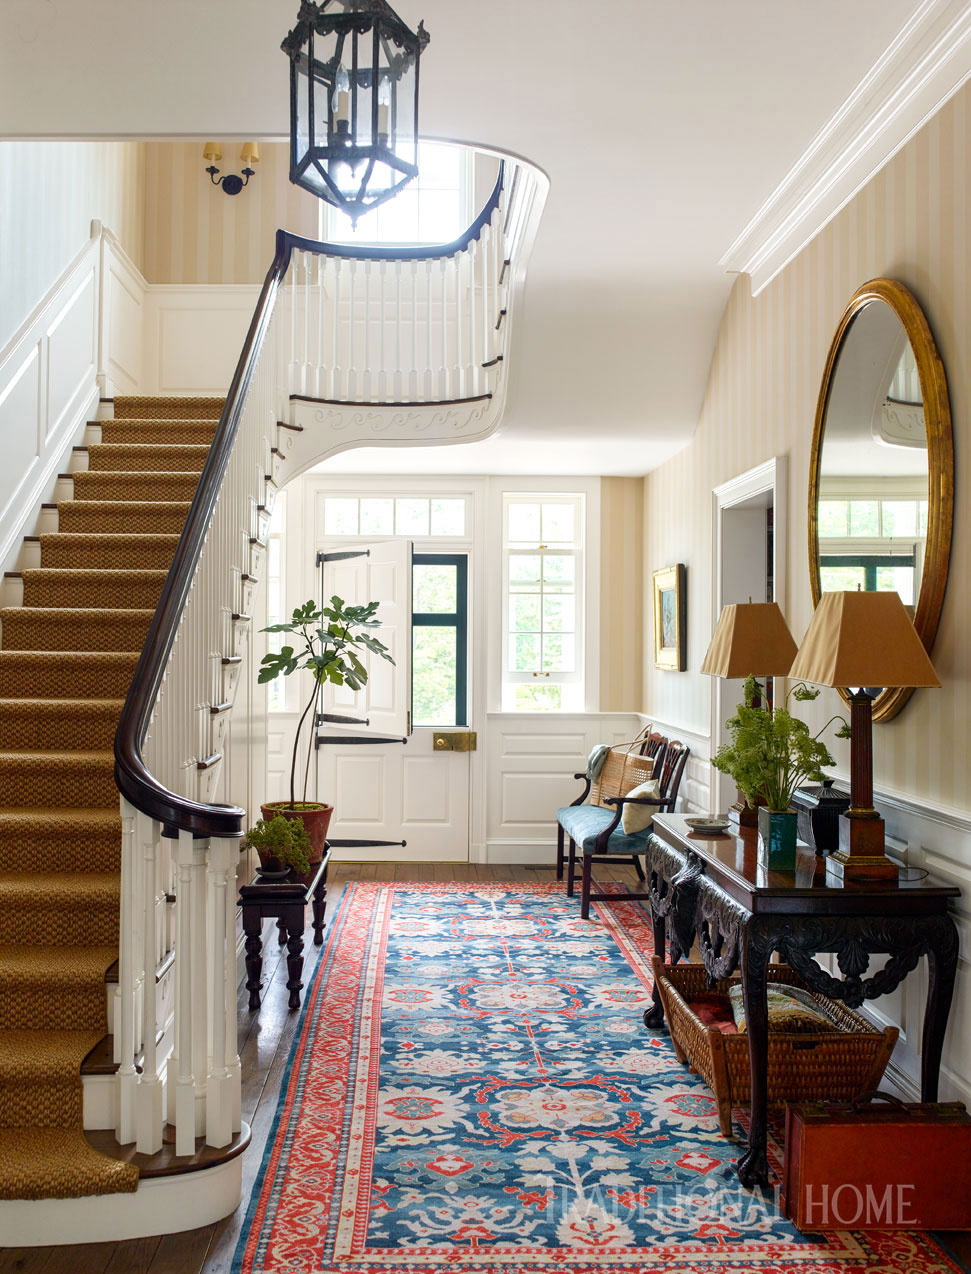 Home Interior Entrance Design Ideas: Dutch Colonial Home Rooted In History